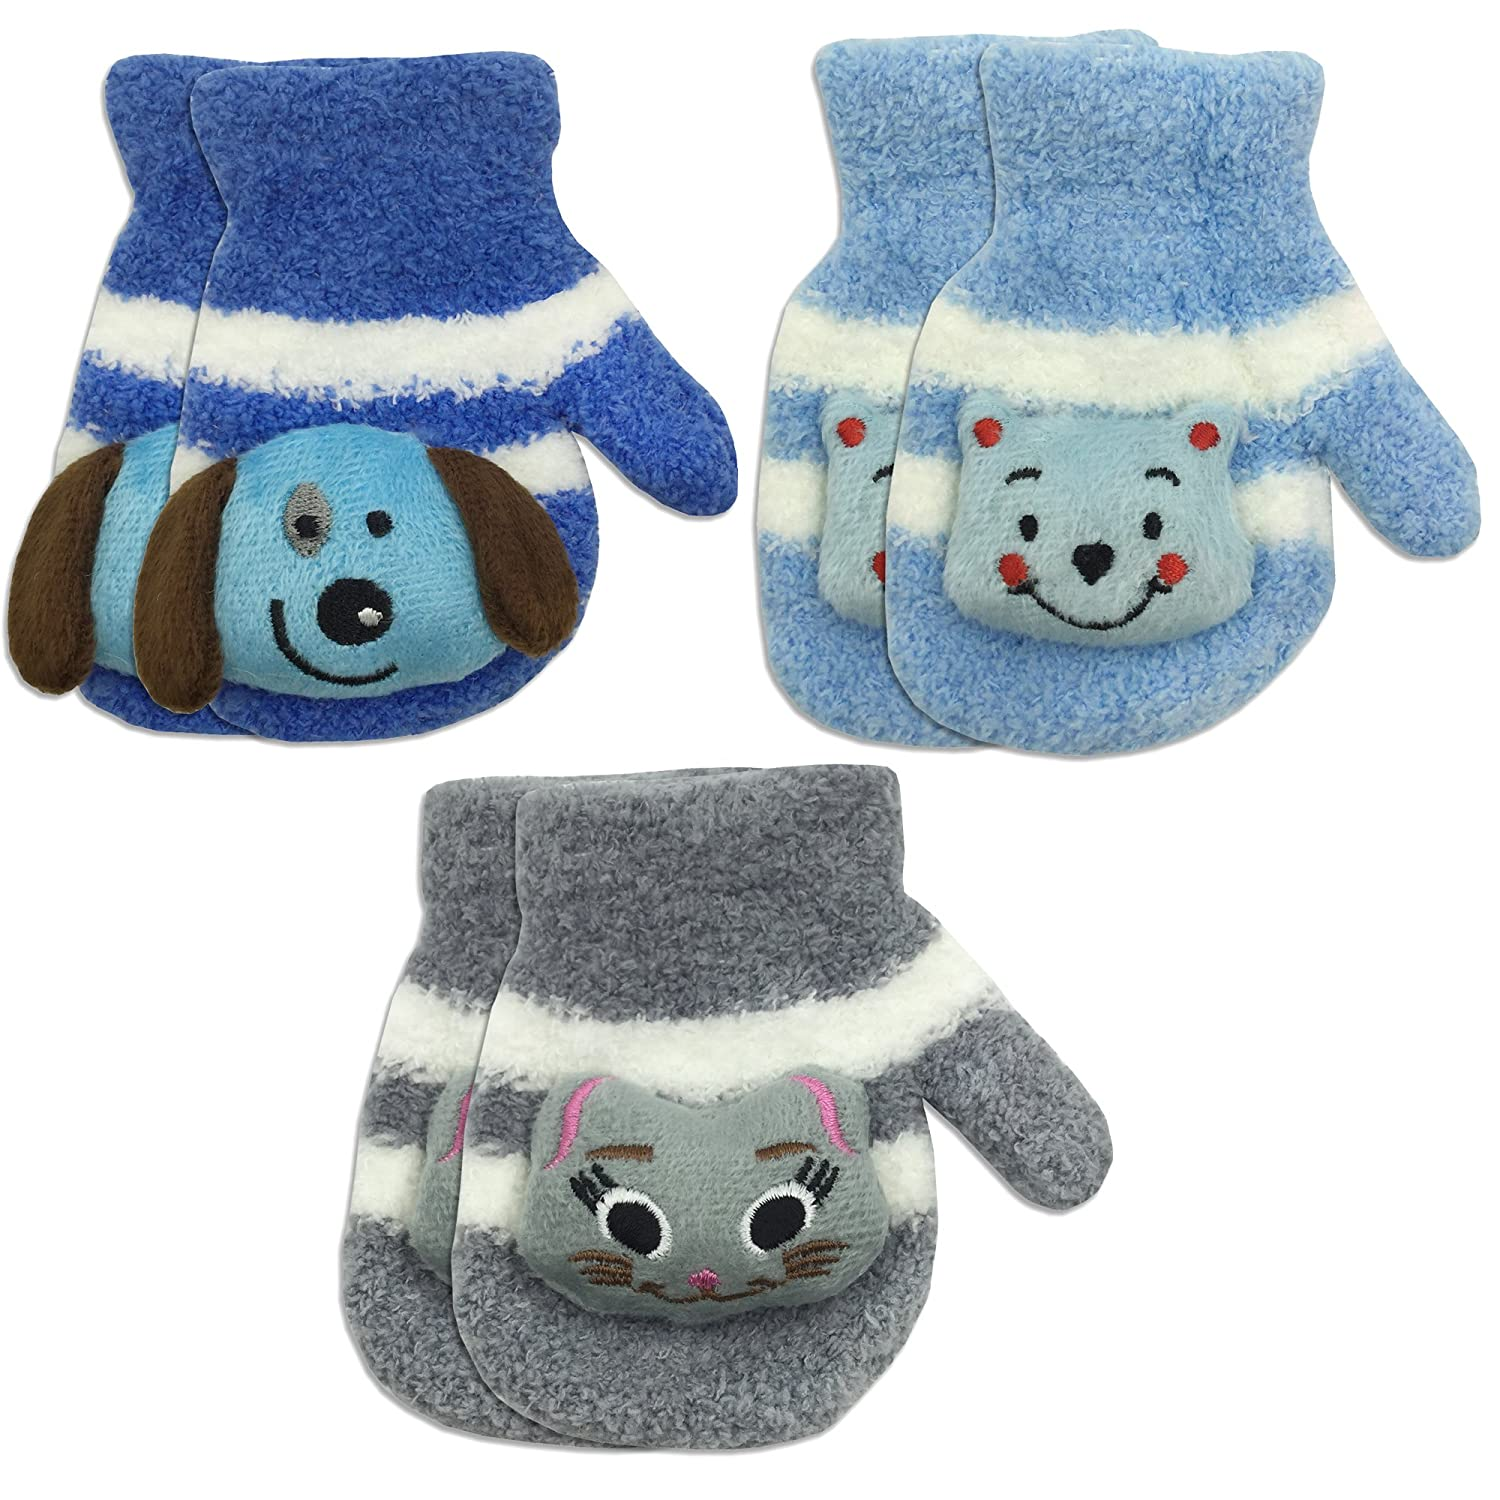 3 Pair Pack Toddler Baby Boys Warm Winter Mittens Gloves - Cute Fuzzy (Ages 1-3) 4521MP-BOYS-3PK-GP